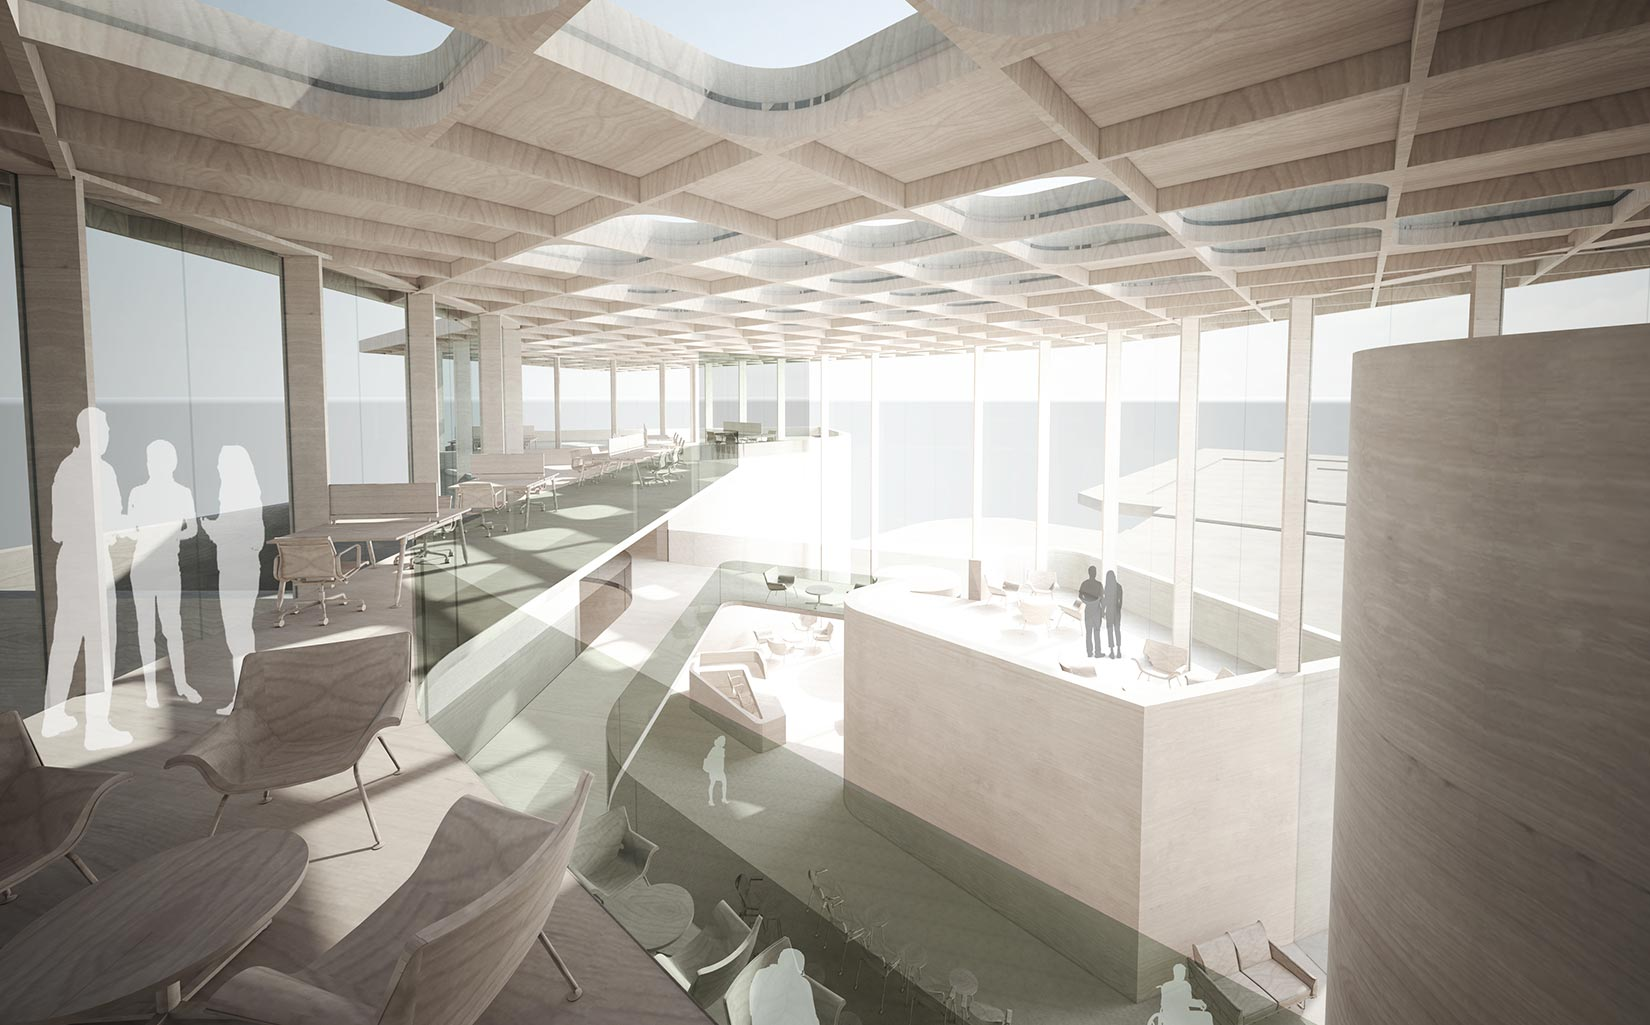 B. Braun Innovation, Communication & Education Centre, Sheffield, Concept Interior Model from Balcony